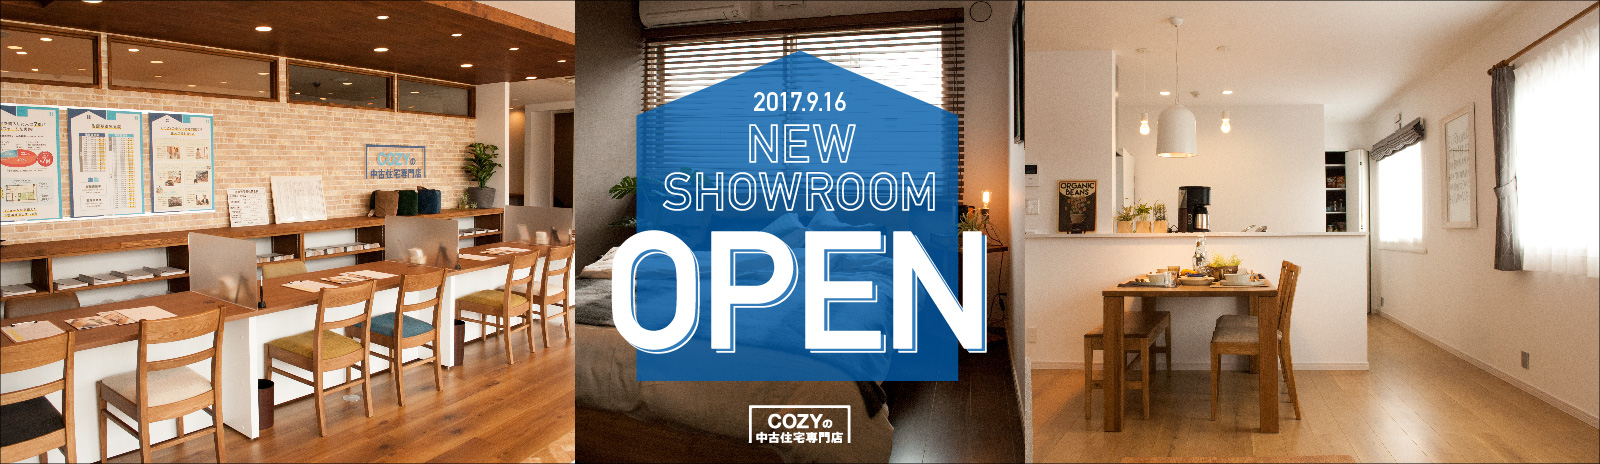 2017.9.16 NEW SHOWROOM OPEN